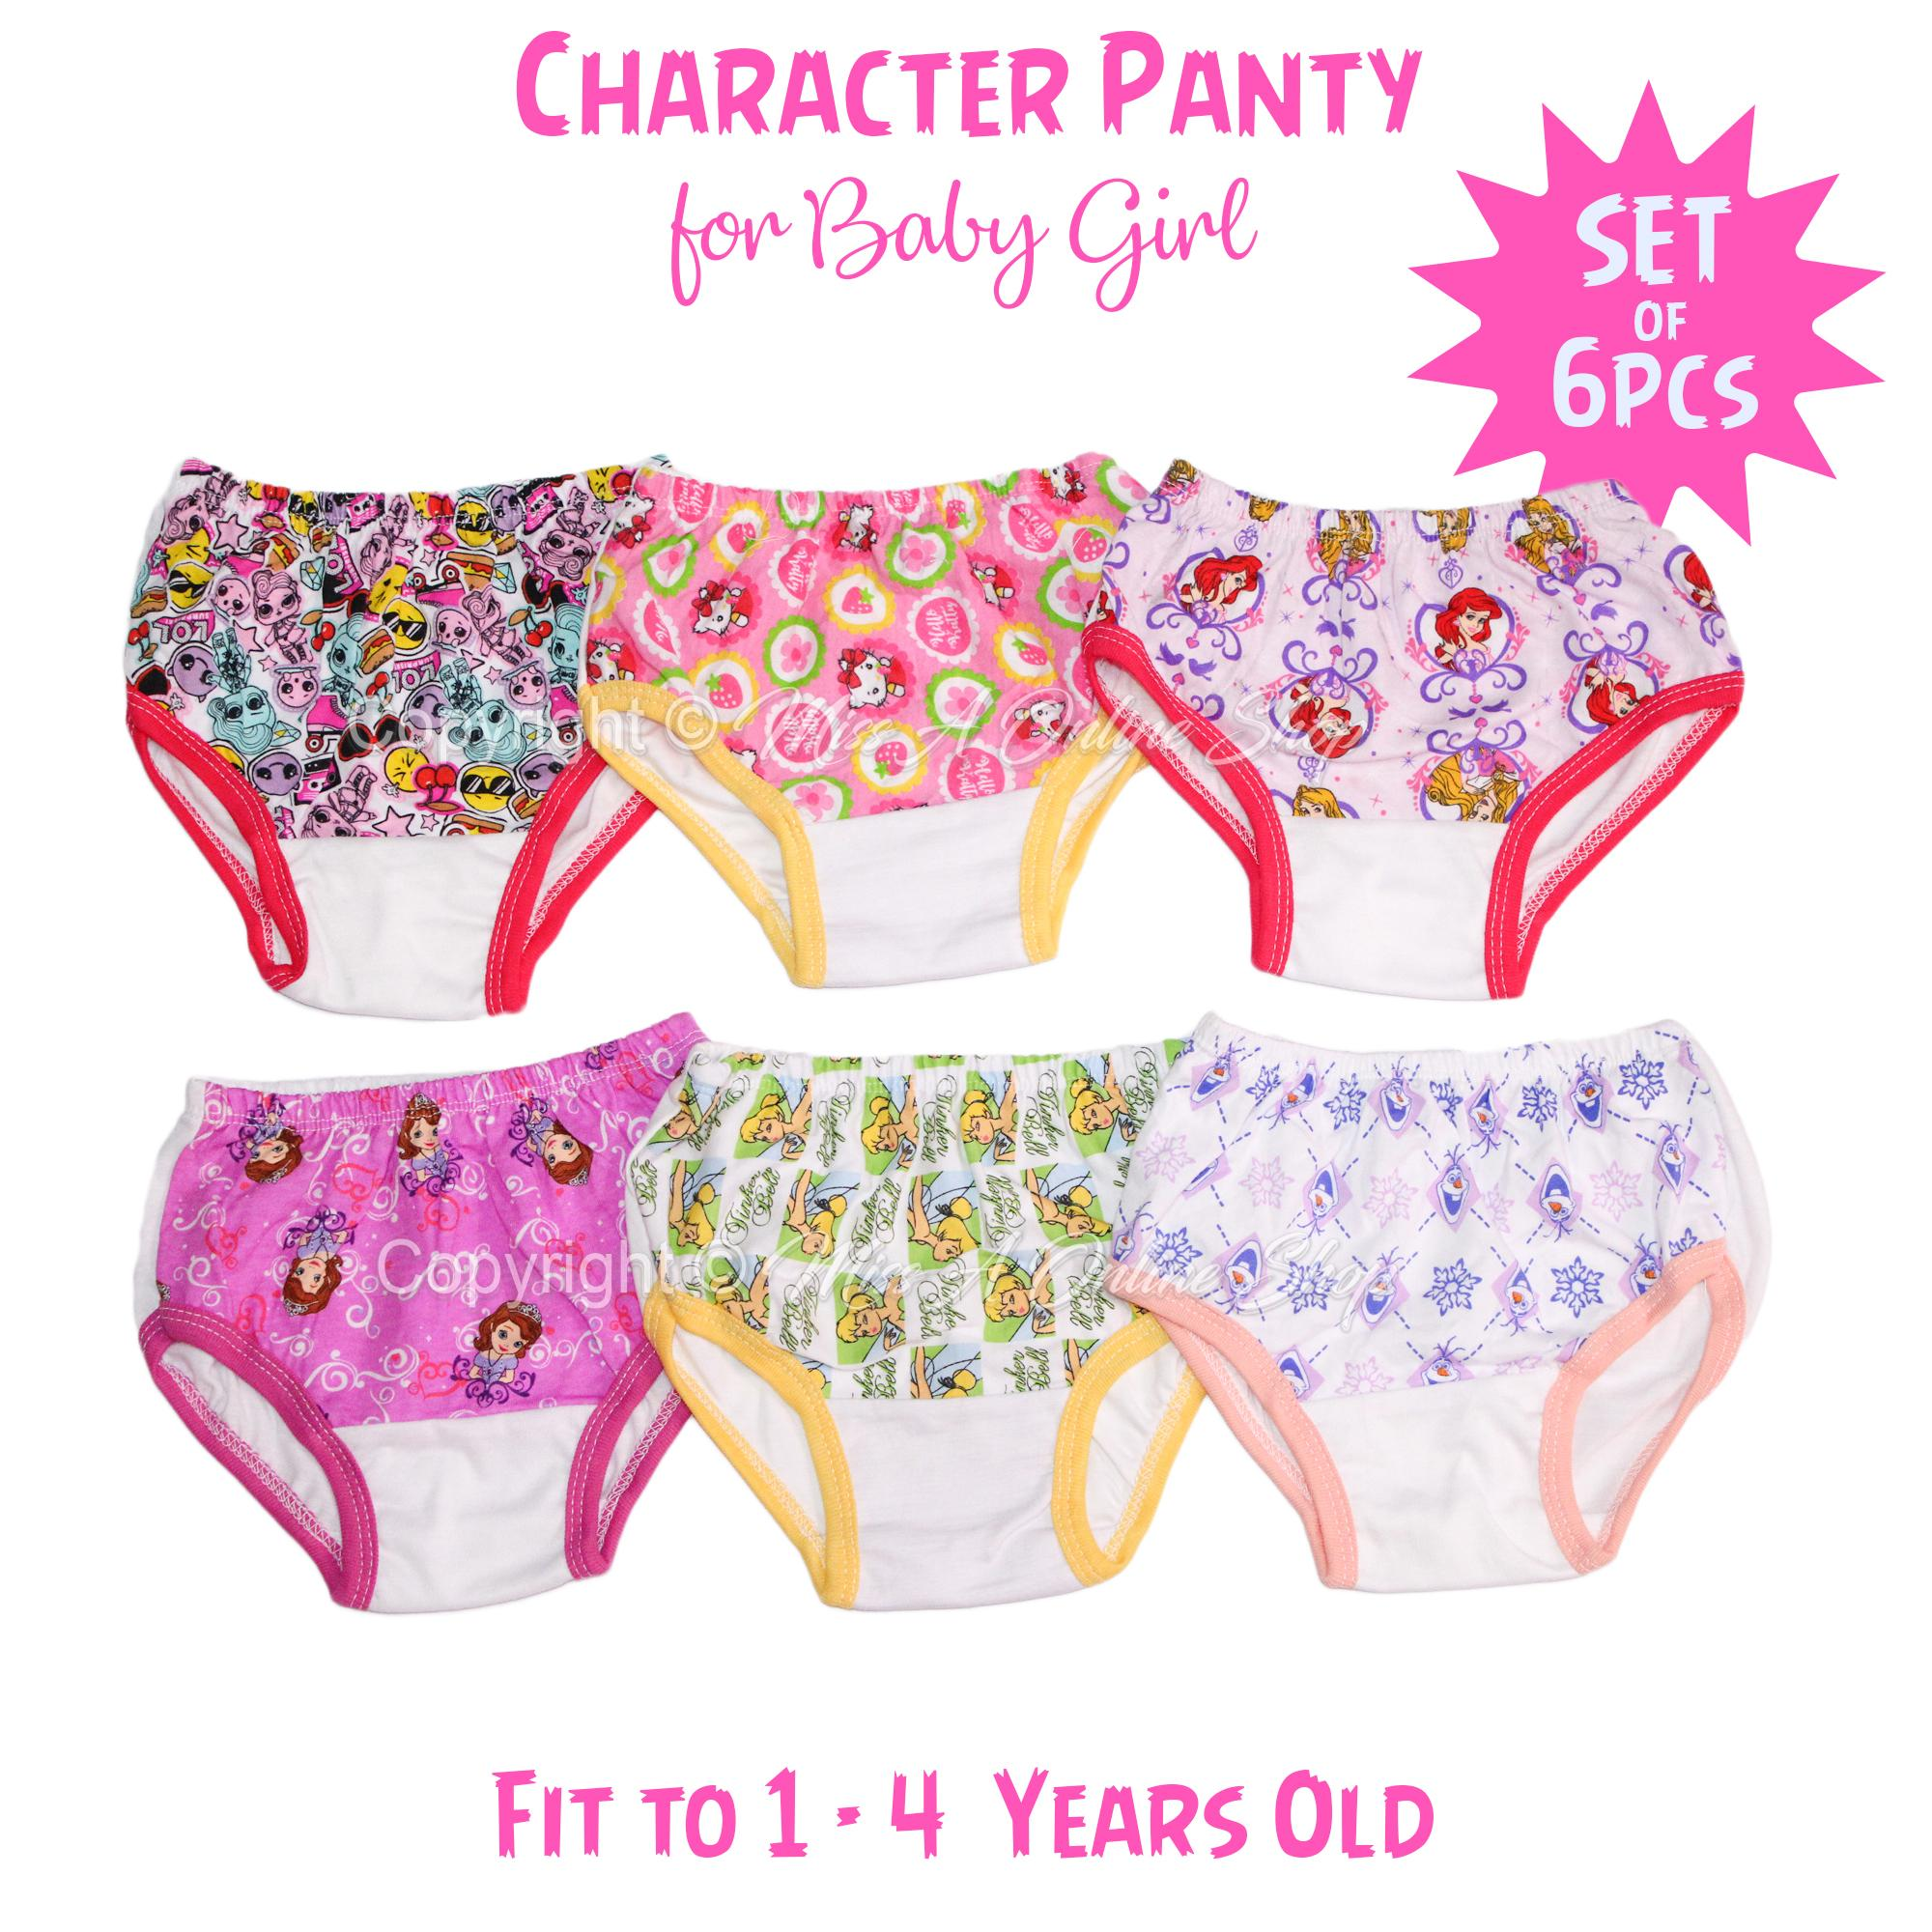 Character Panty For Kids 1-4 Years Old (6 Pieces) By Miss A Online Shop